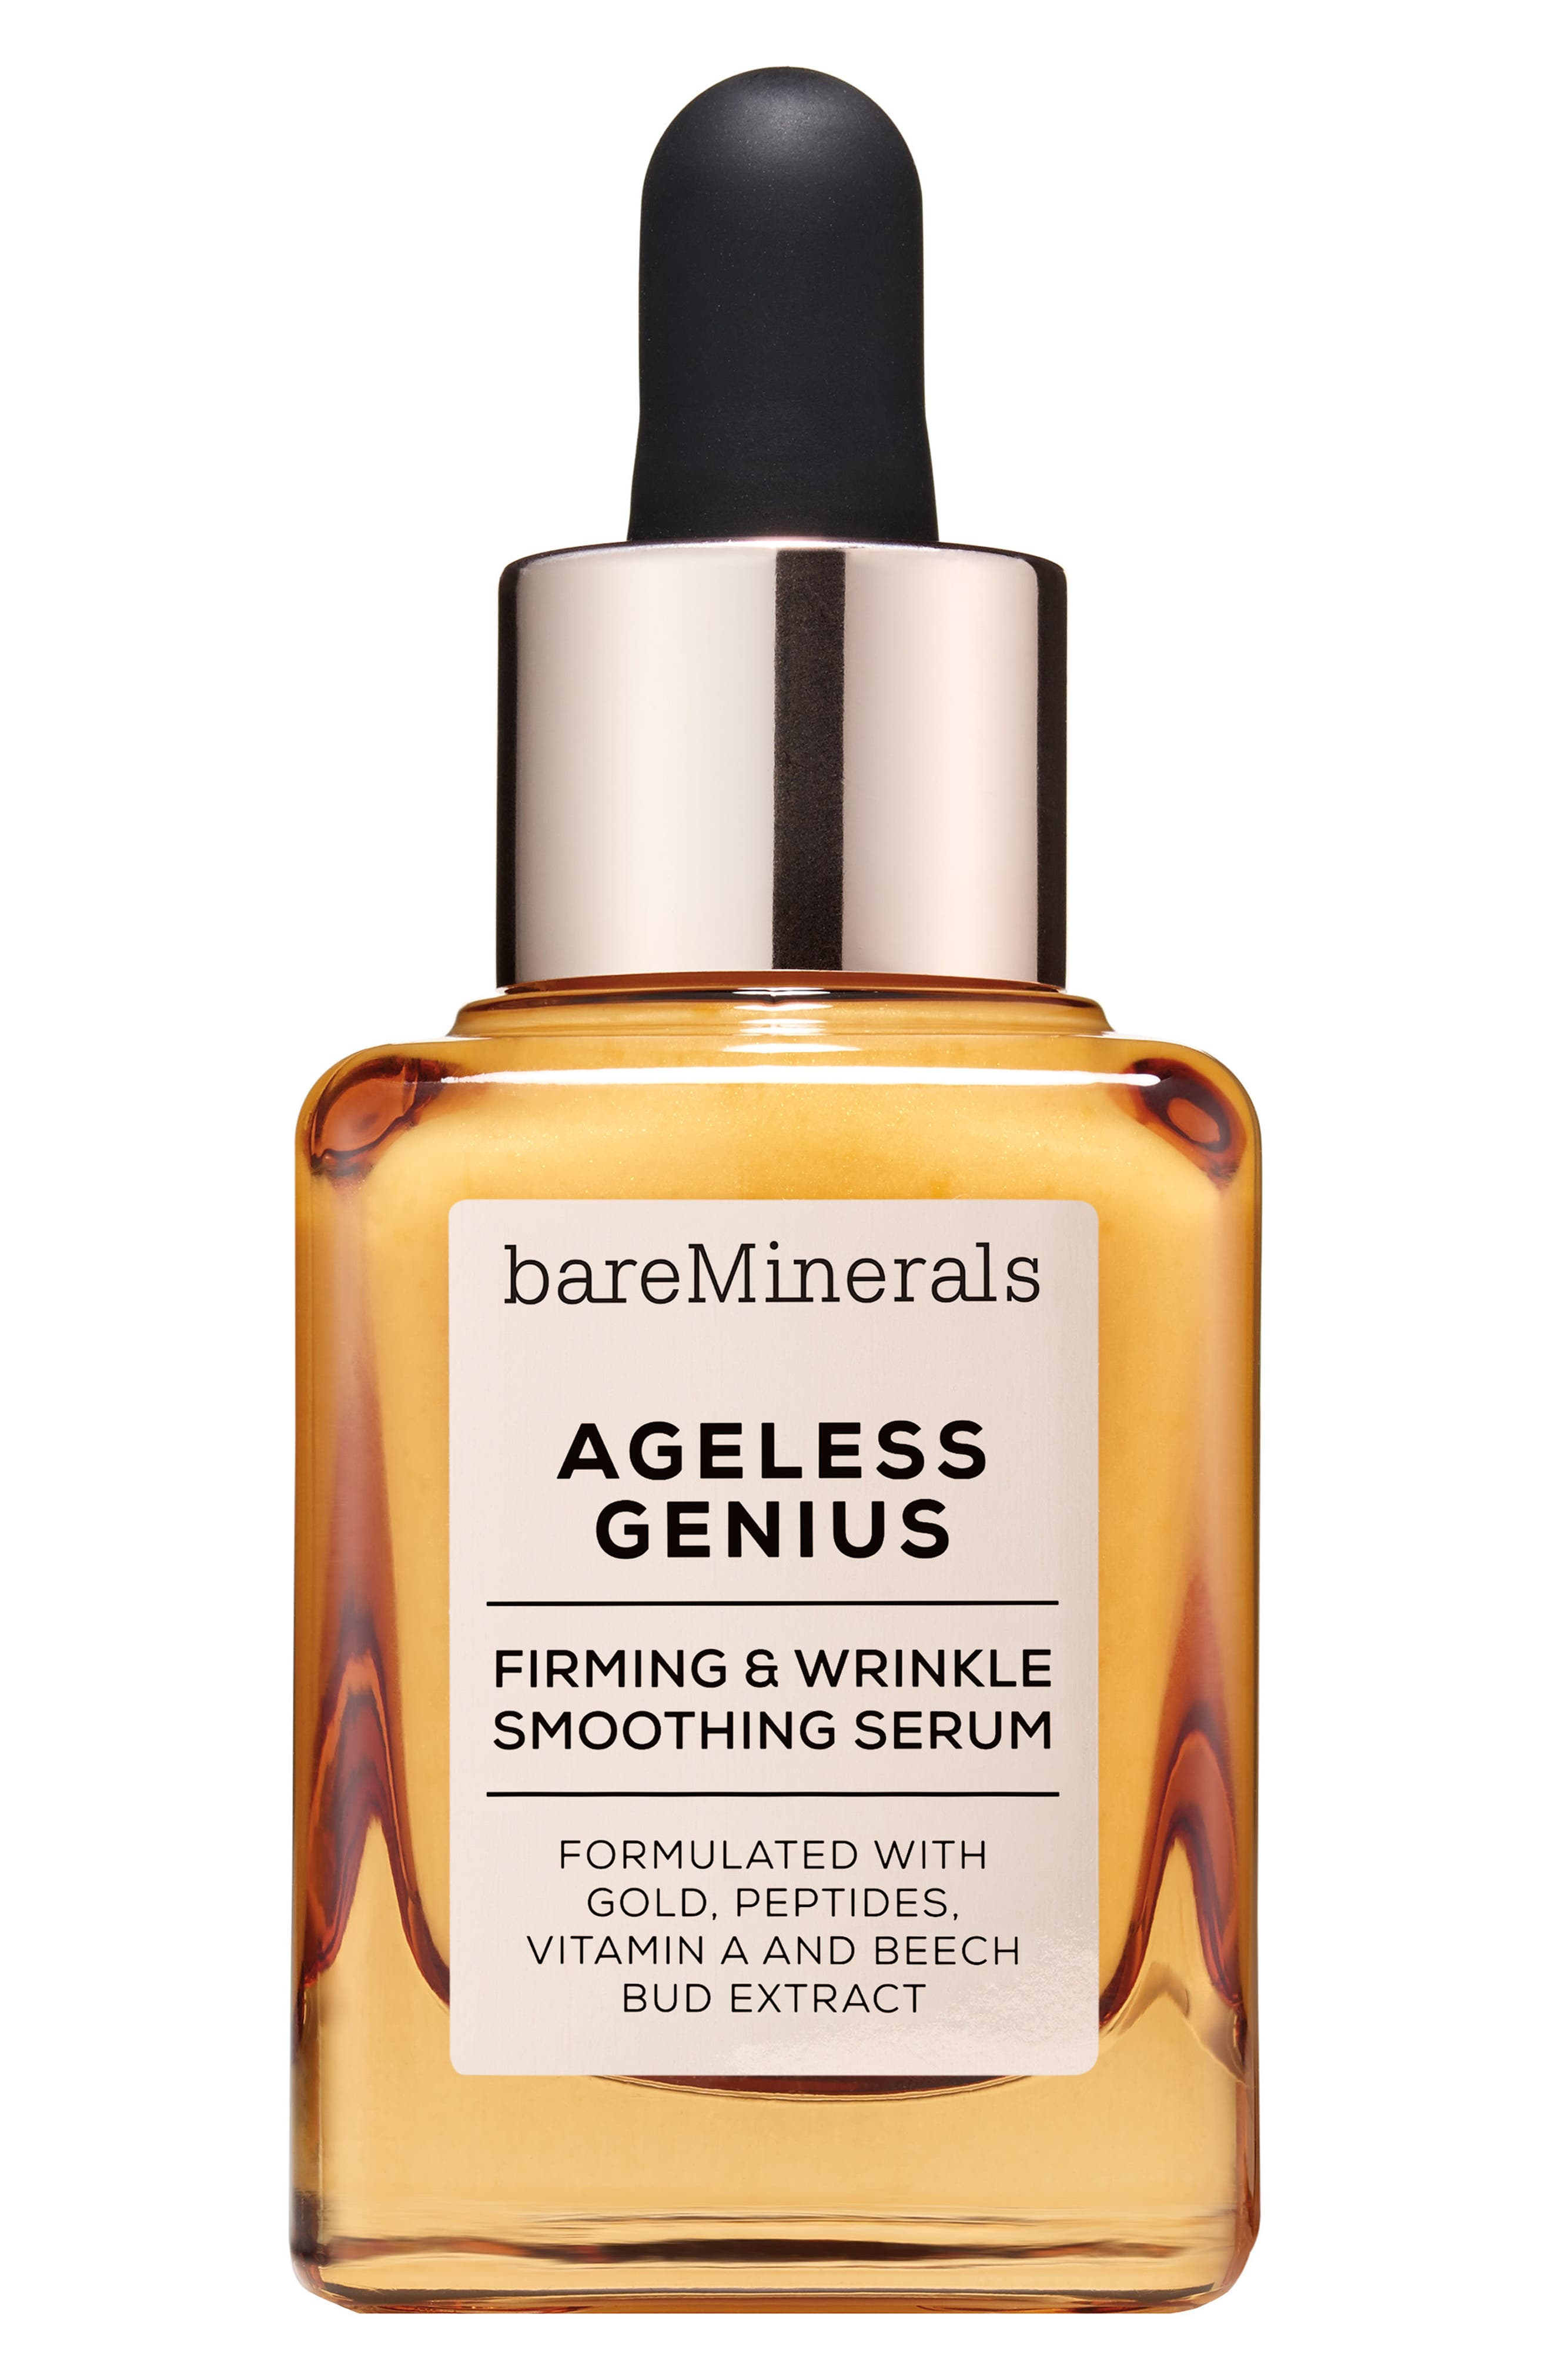 bareMinerals® Ageless Genius Firming & Wrinkle Smoothing Serum